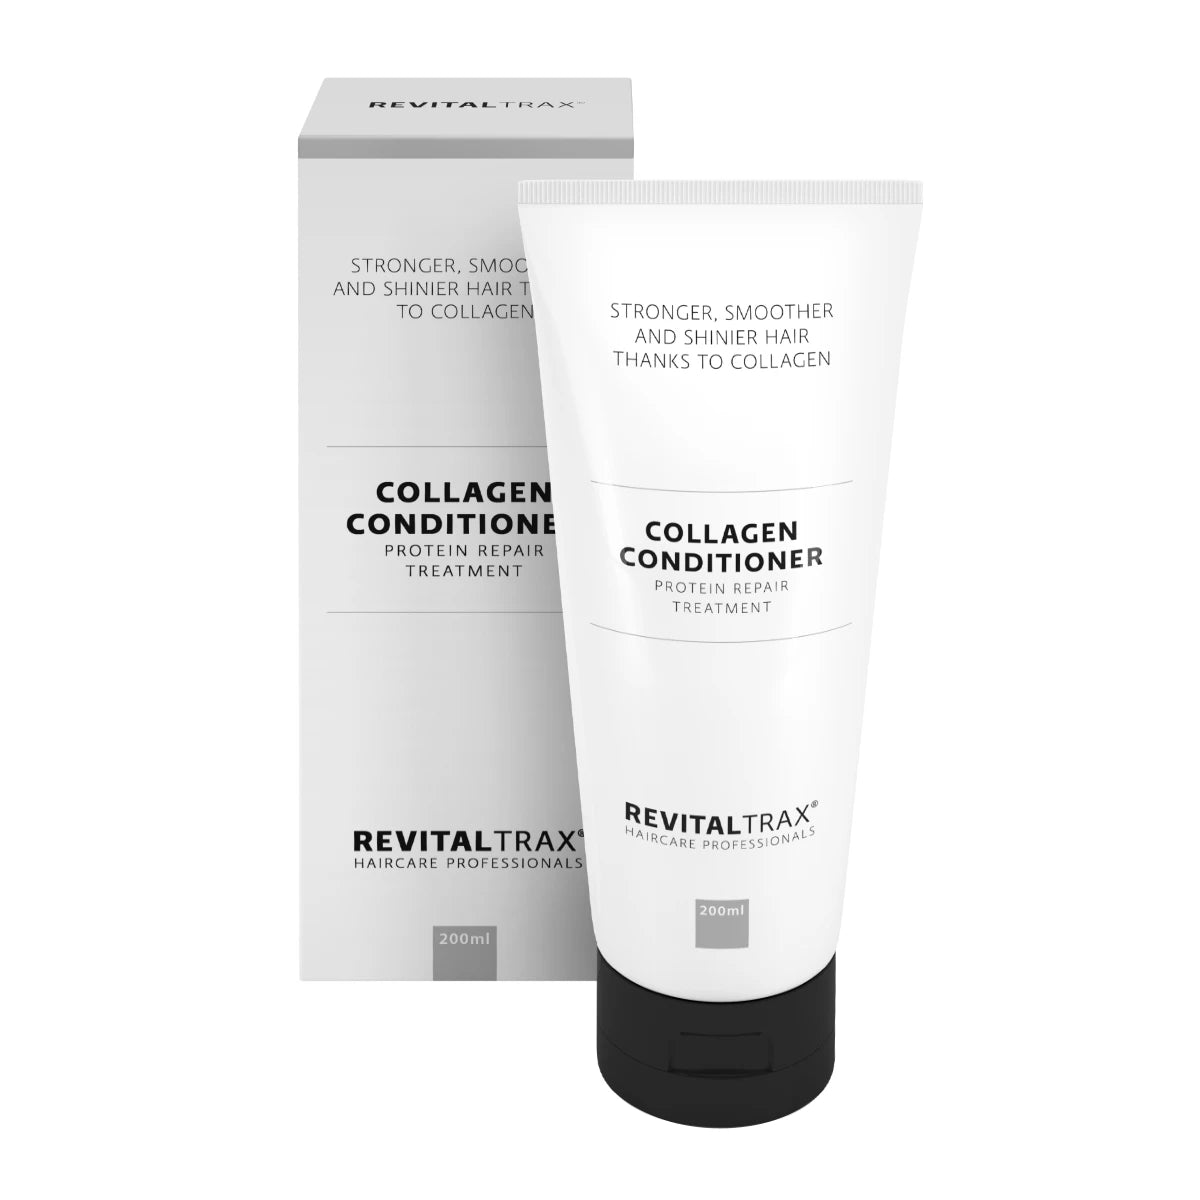 RevitalTrax Collagen Conditioner.